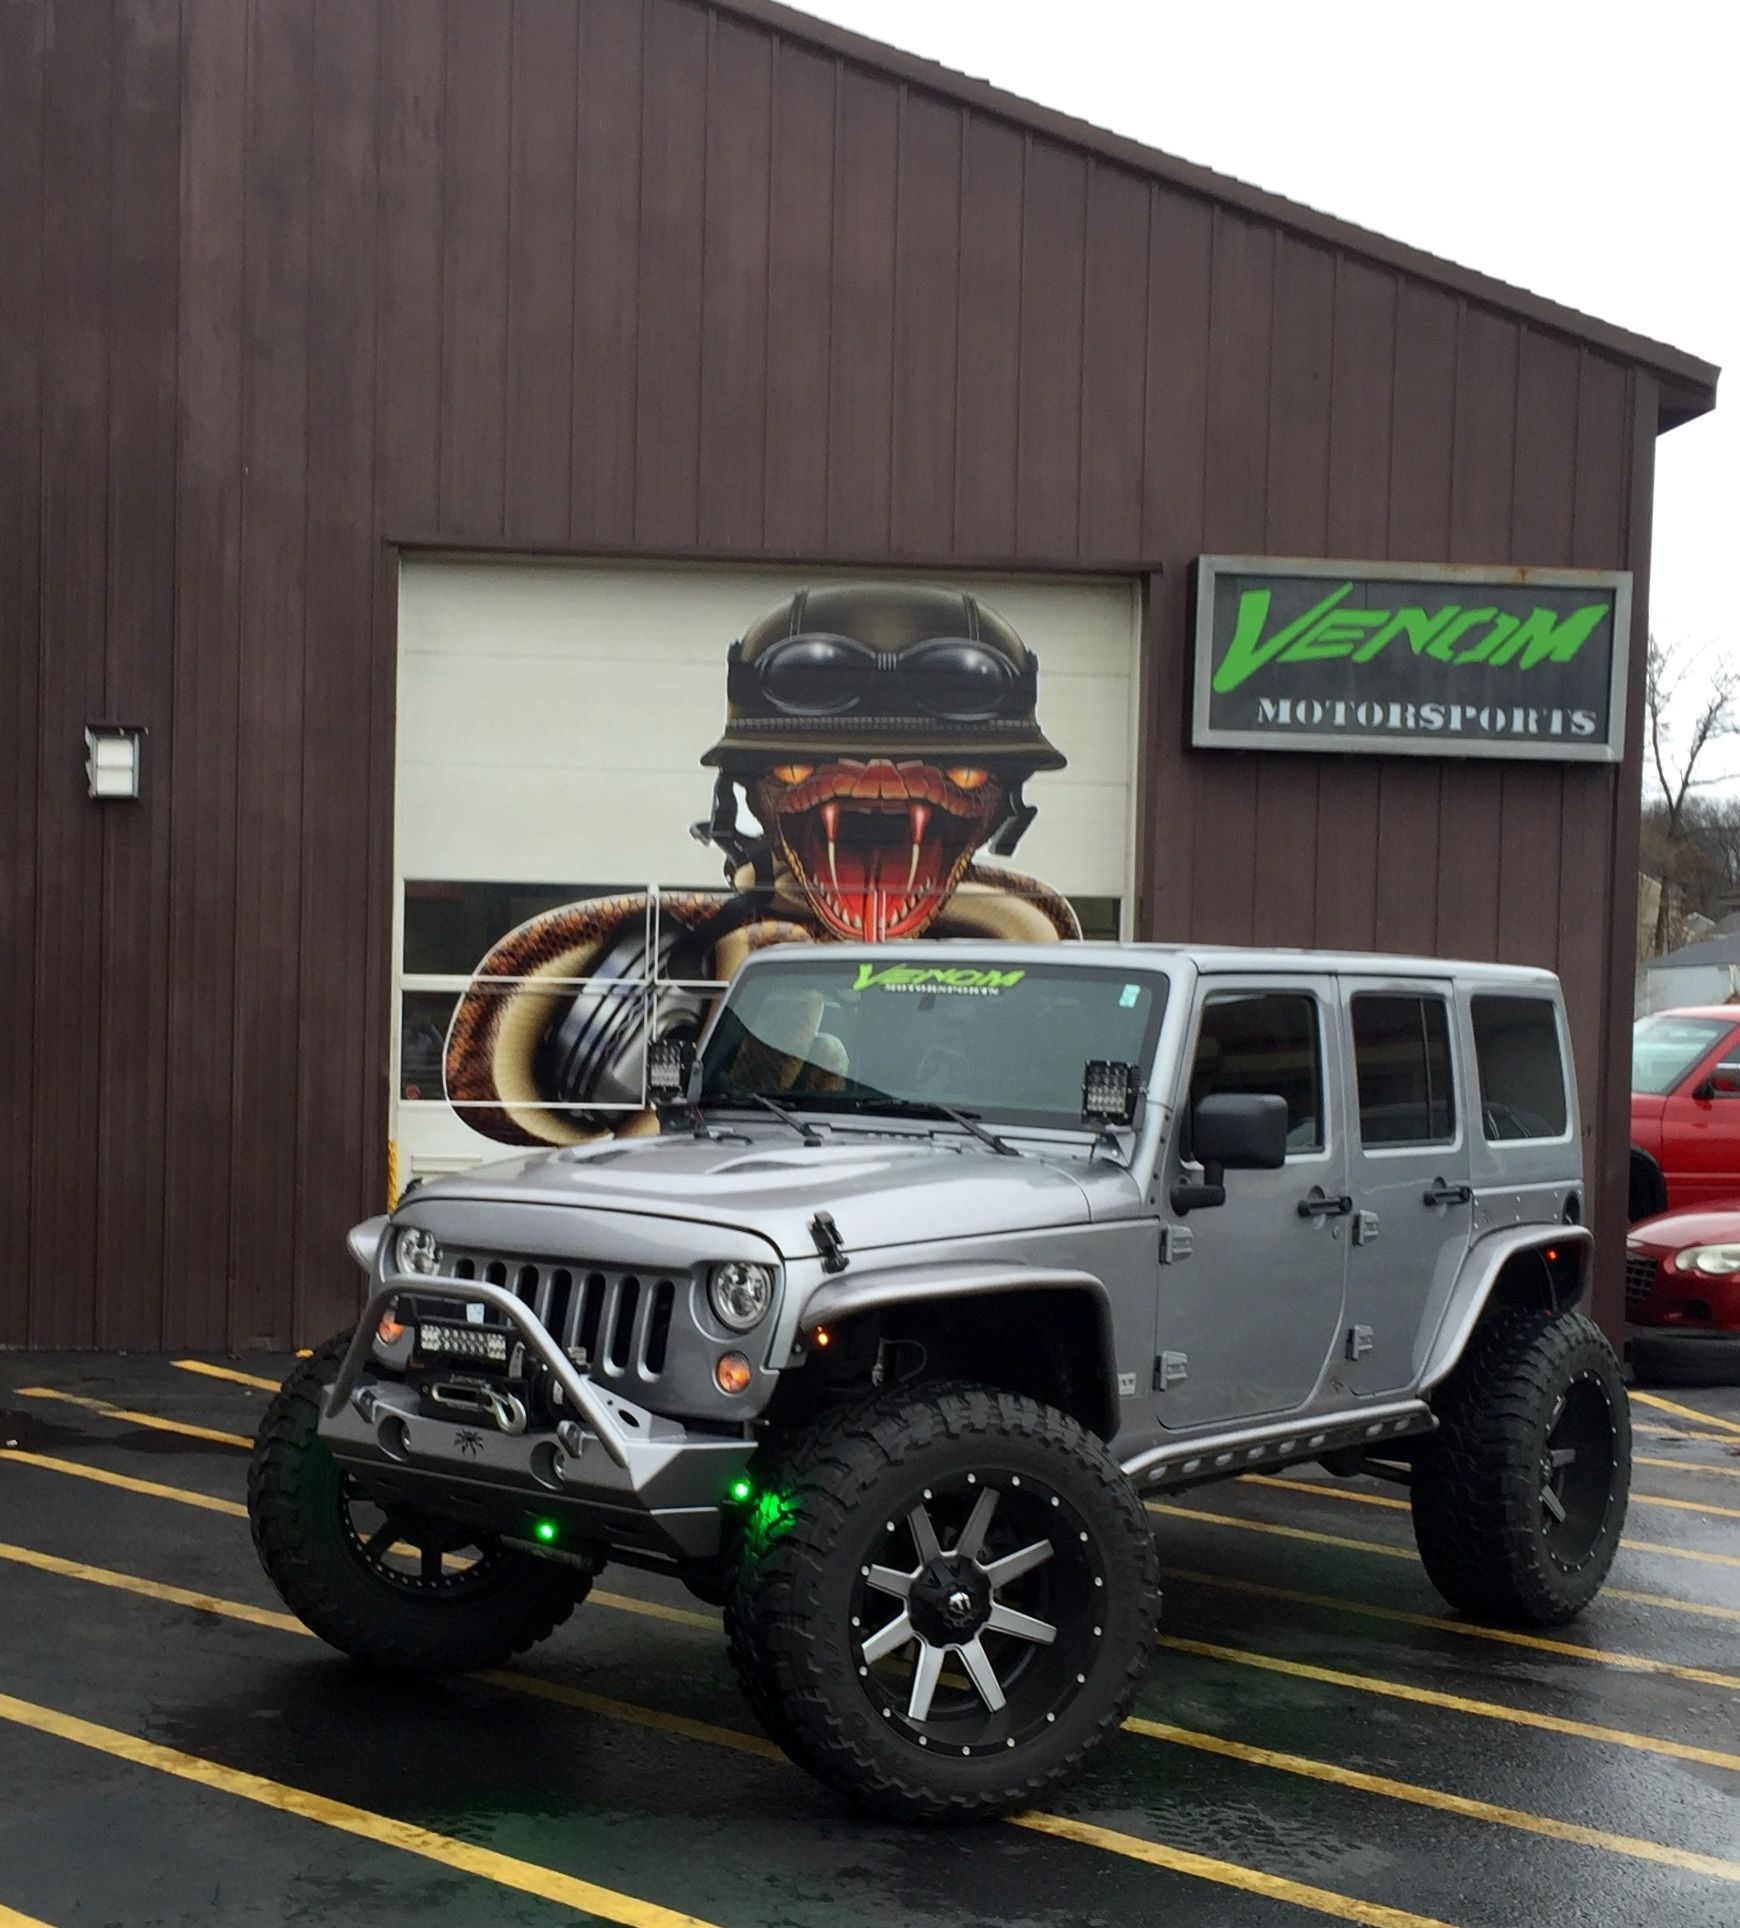 Custom Jeep Wrangler By Venom Motorsports Grand Rapids Michigan Financing Available 616 635 2519 Custom Jeep Jeep Cars Jeep Wrangler